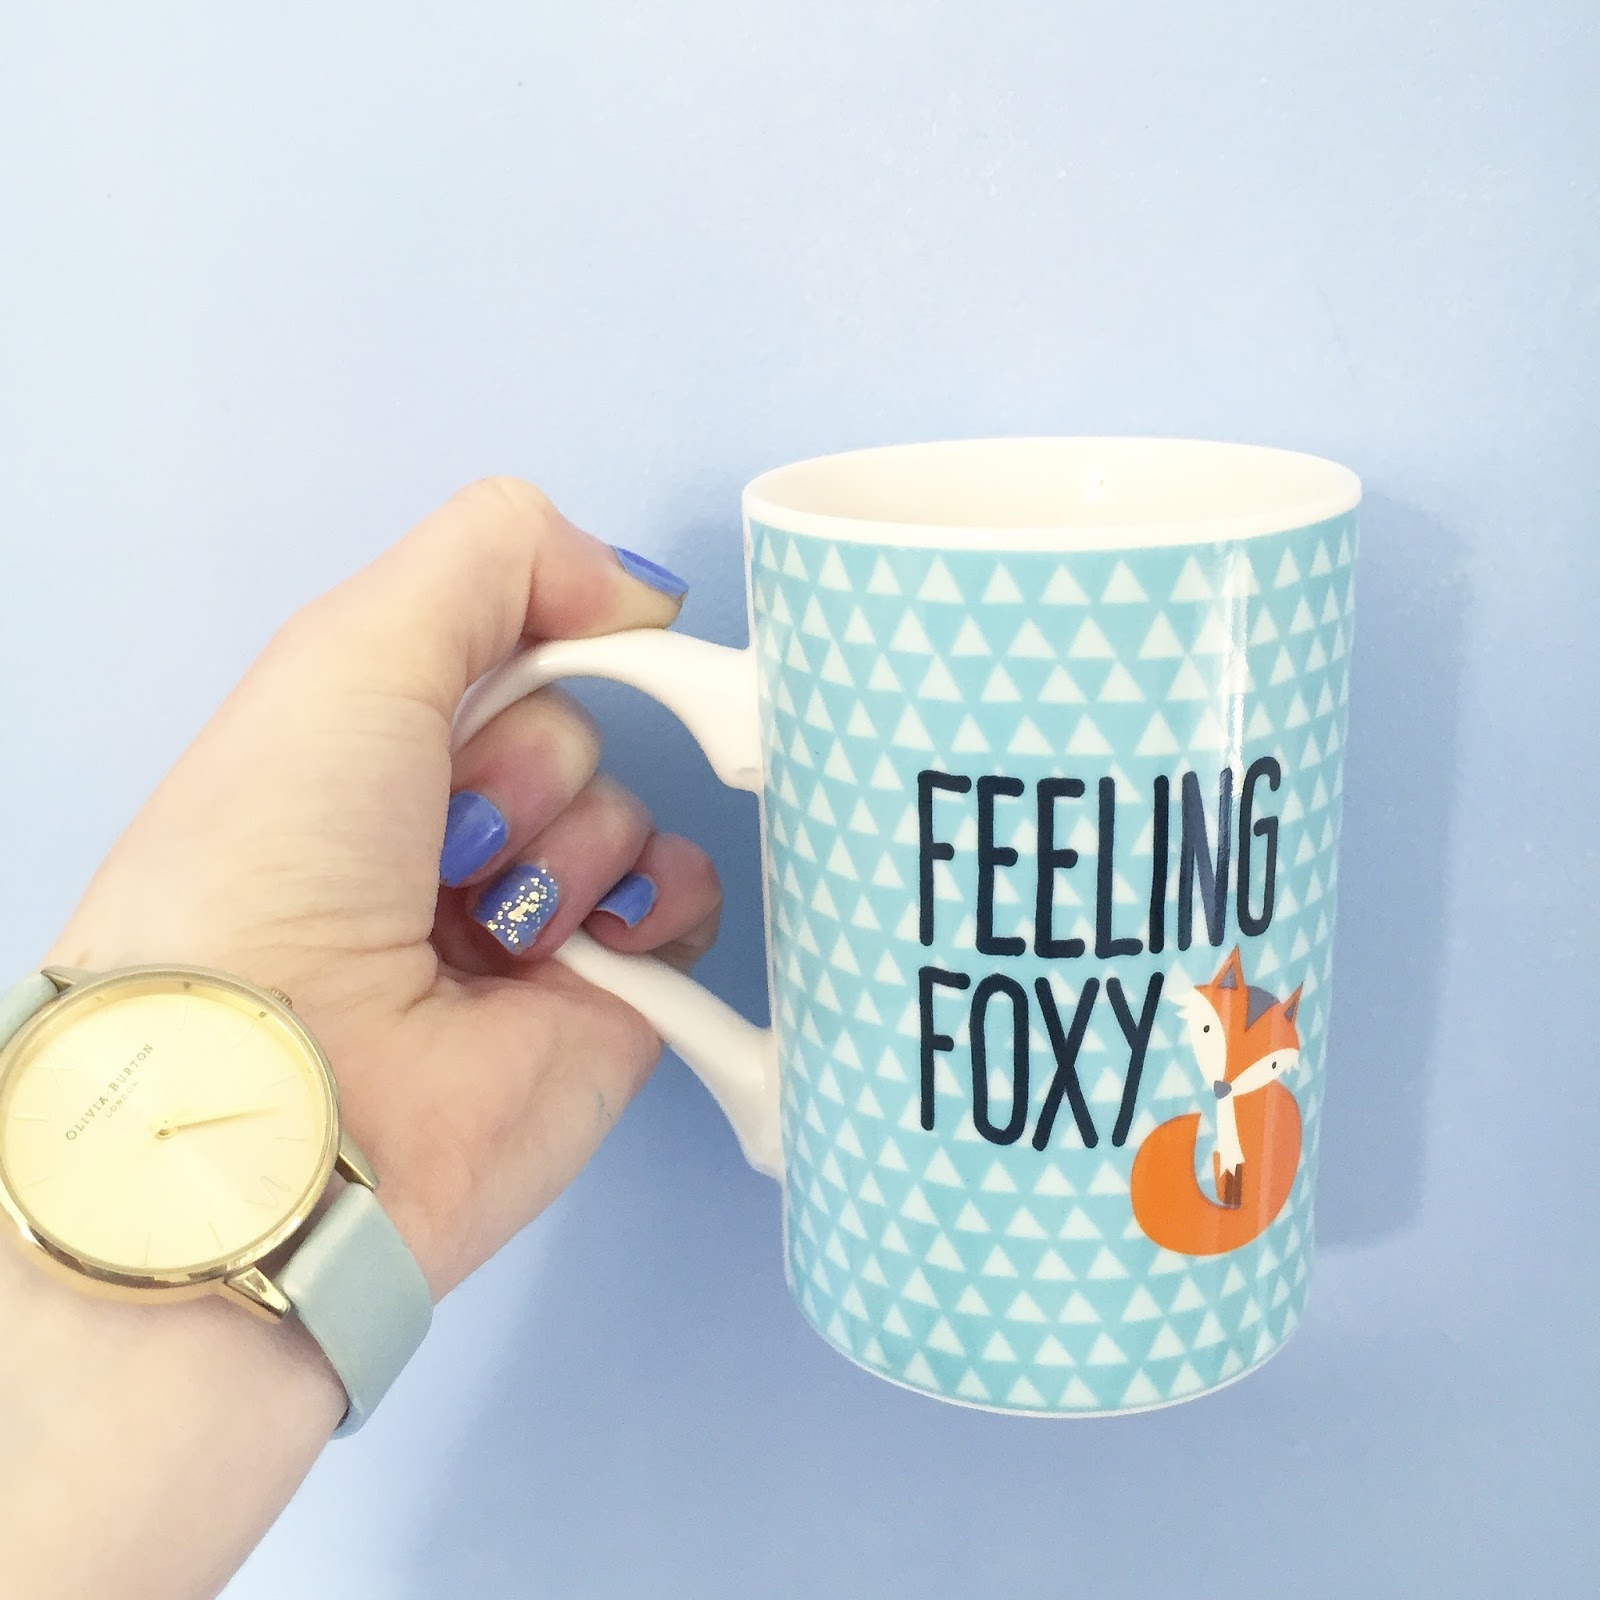 foxes, keeptheban, primark